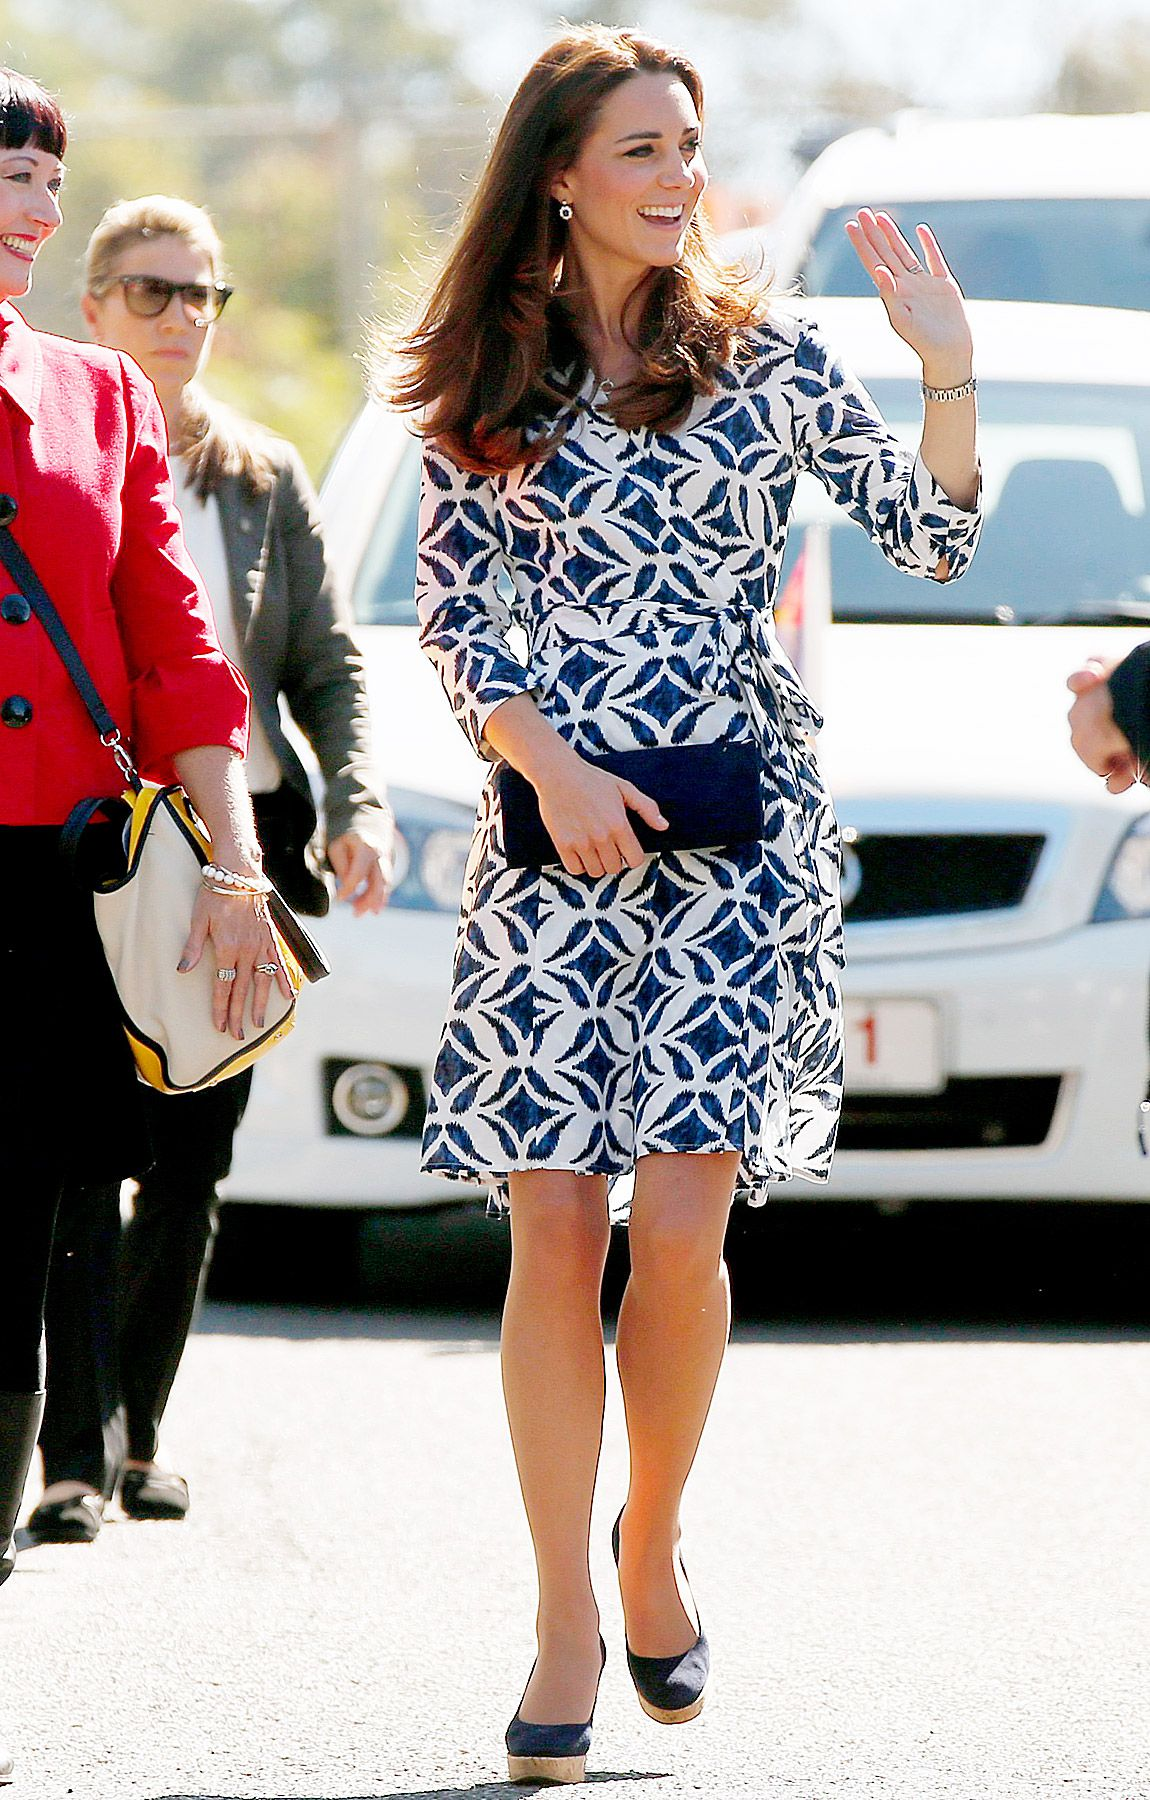 Kate middletons dvf wrap dress sells out get the look for less kate middletons dvf wrap dress sells out get the look for less ombrellifo Image collections